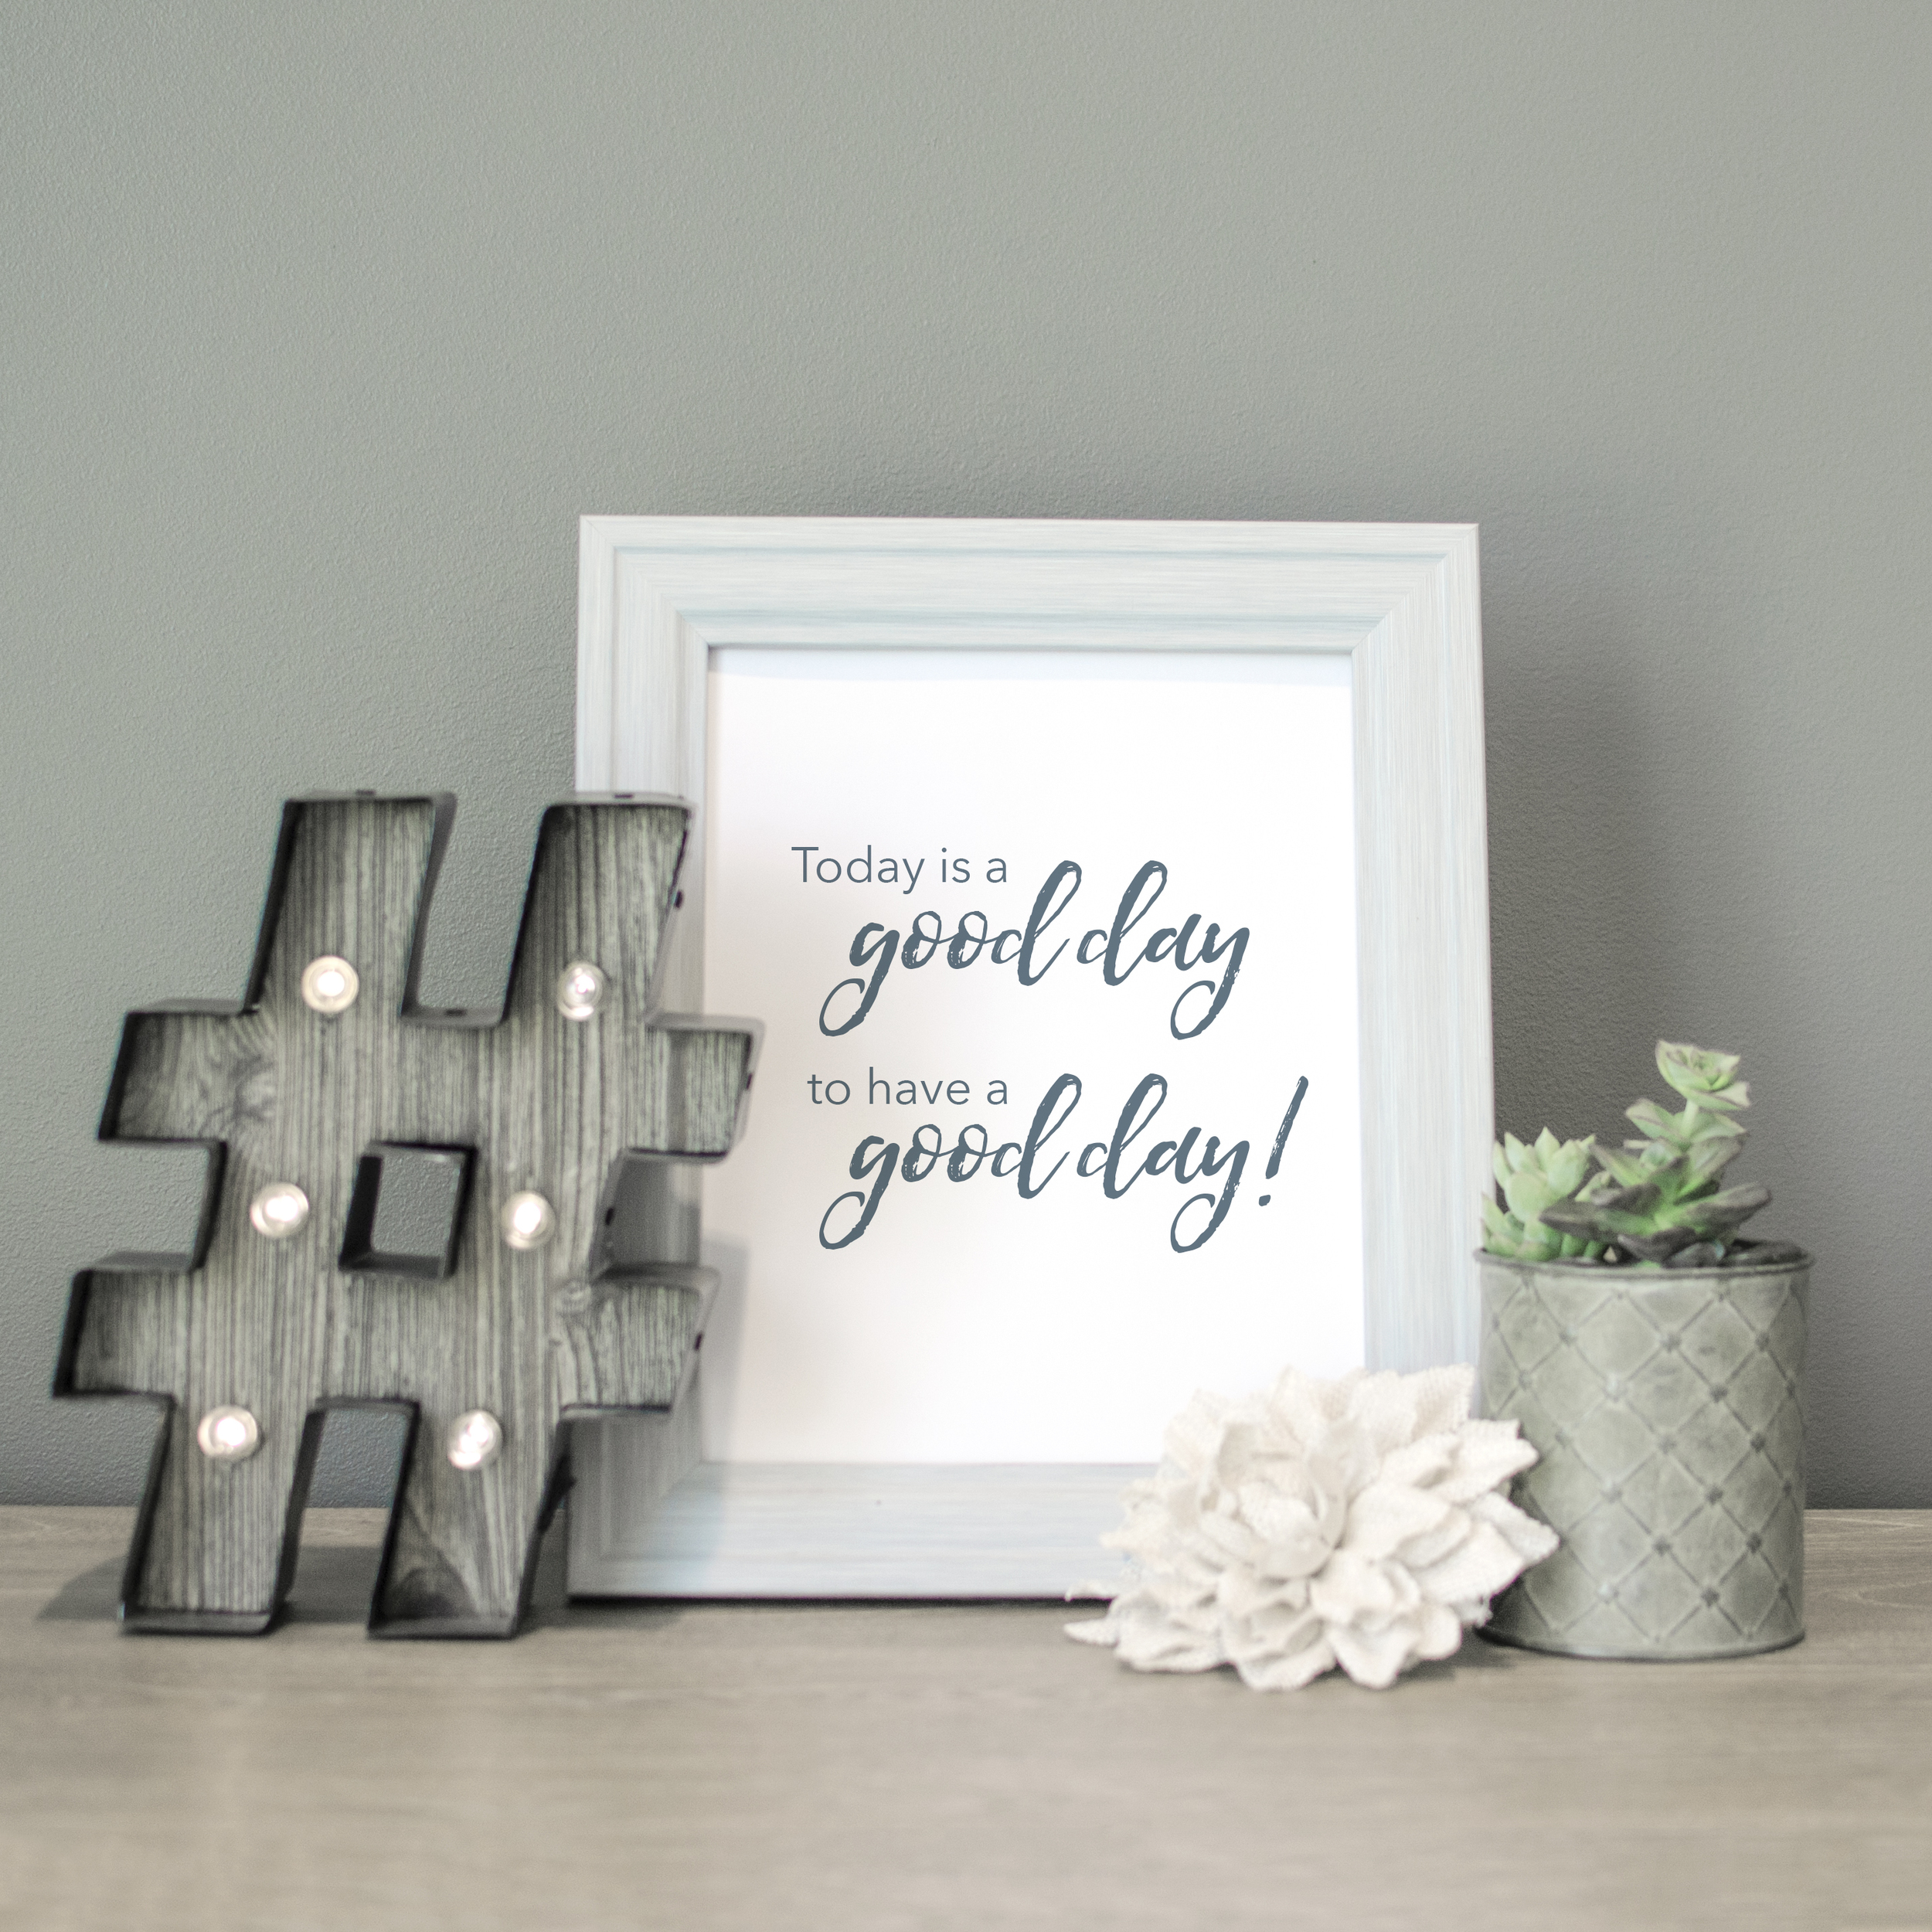 Good Day for a Good Day Brand Photo